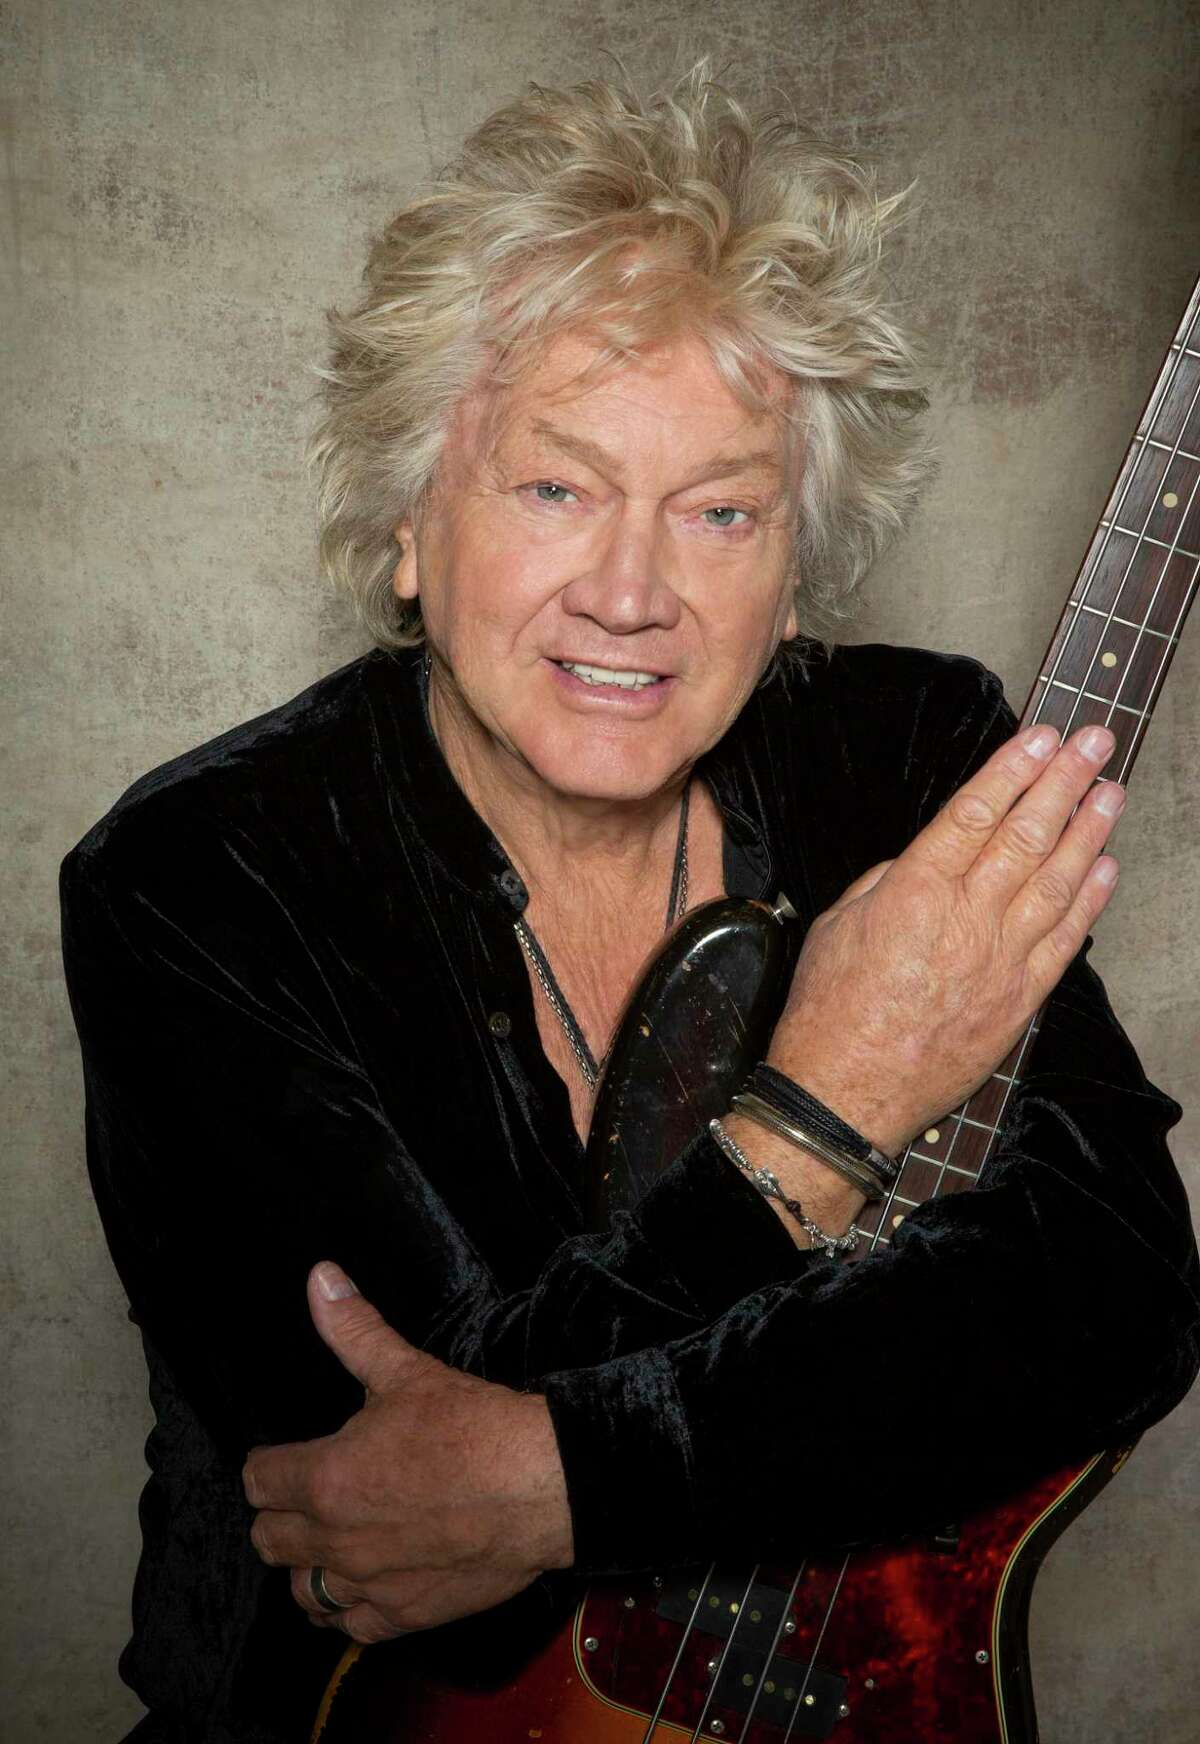 John Lodge, legendary bass player, songwriter and vocalist of The Moody Blues, is set to perform at Infinity Music Hall in Hartford March 4.